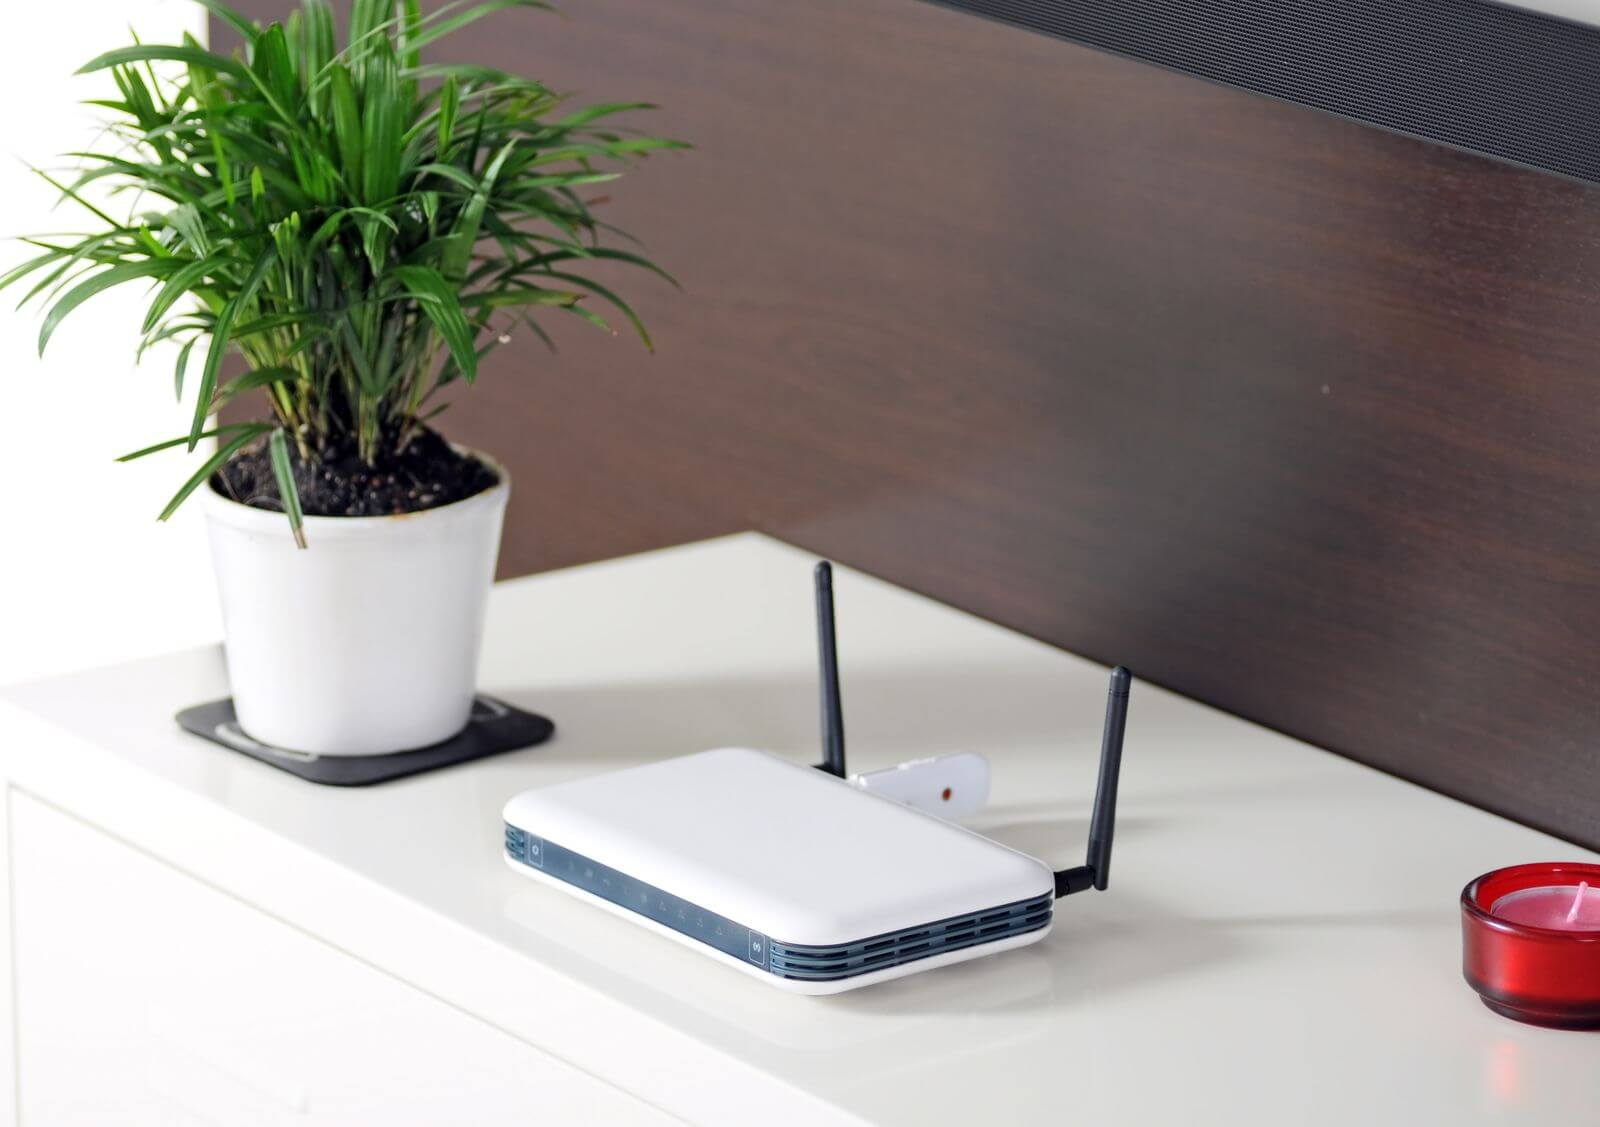 Buy a nice, nice new router.